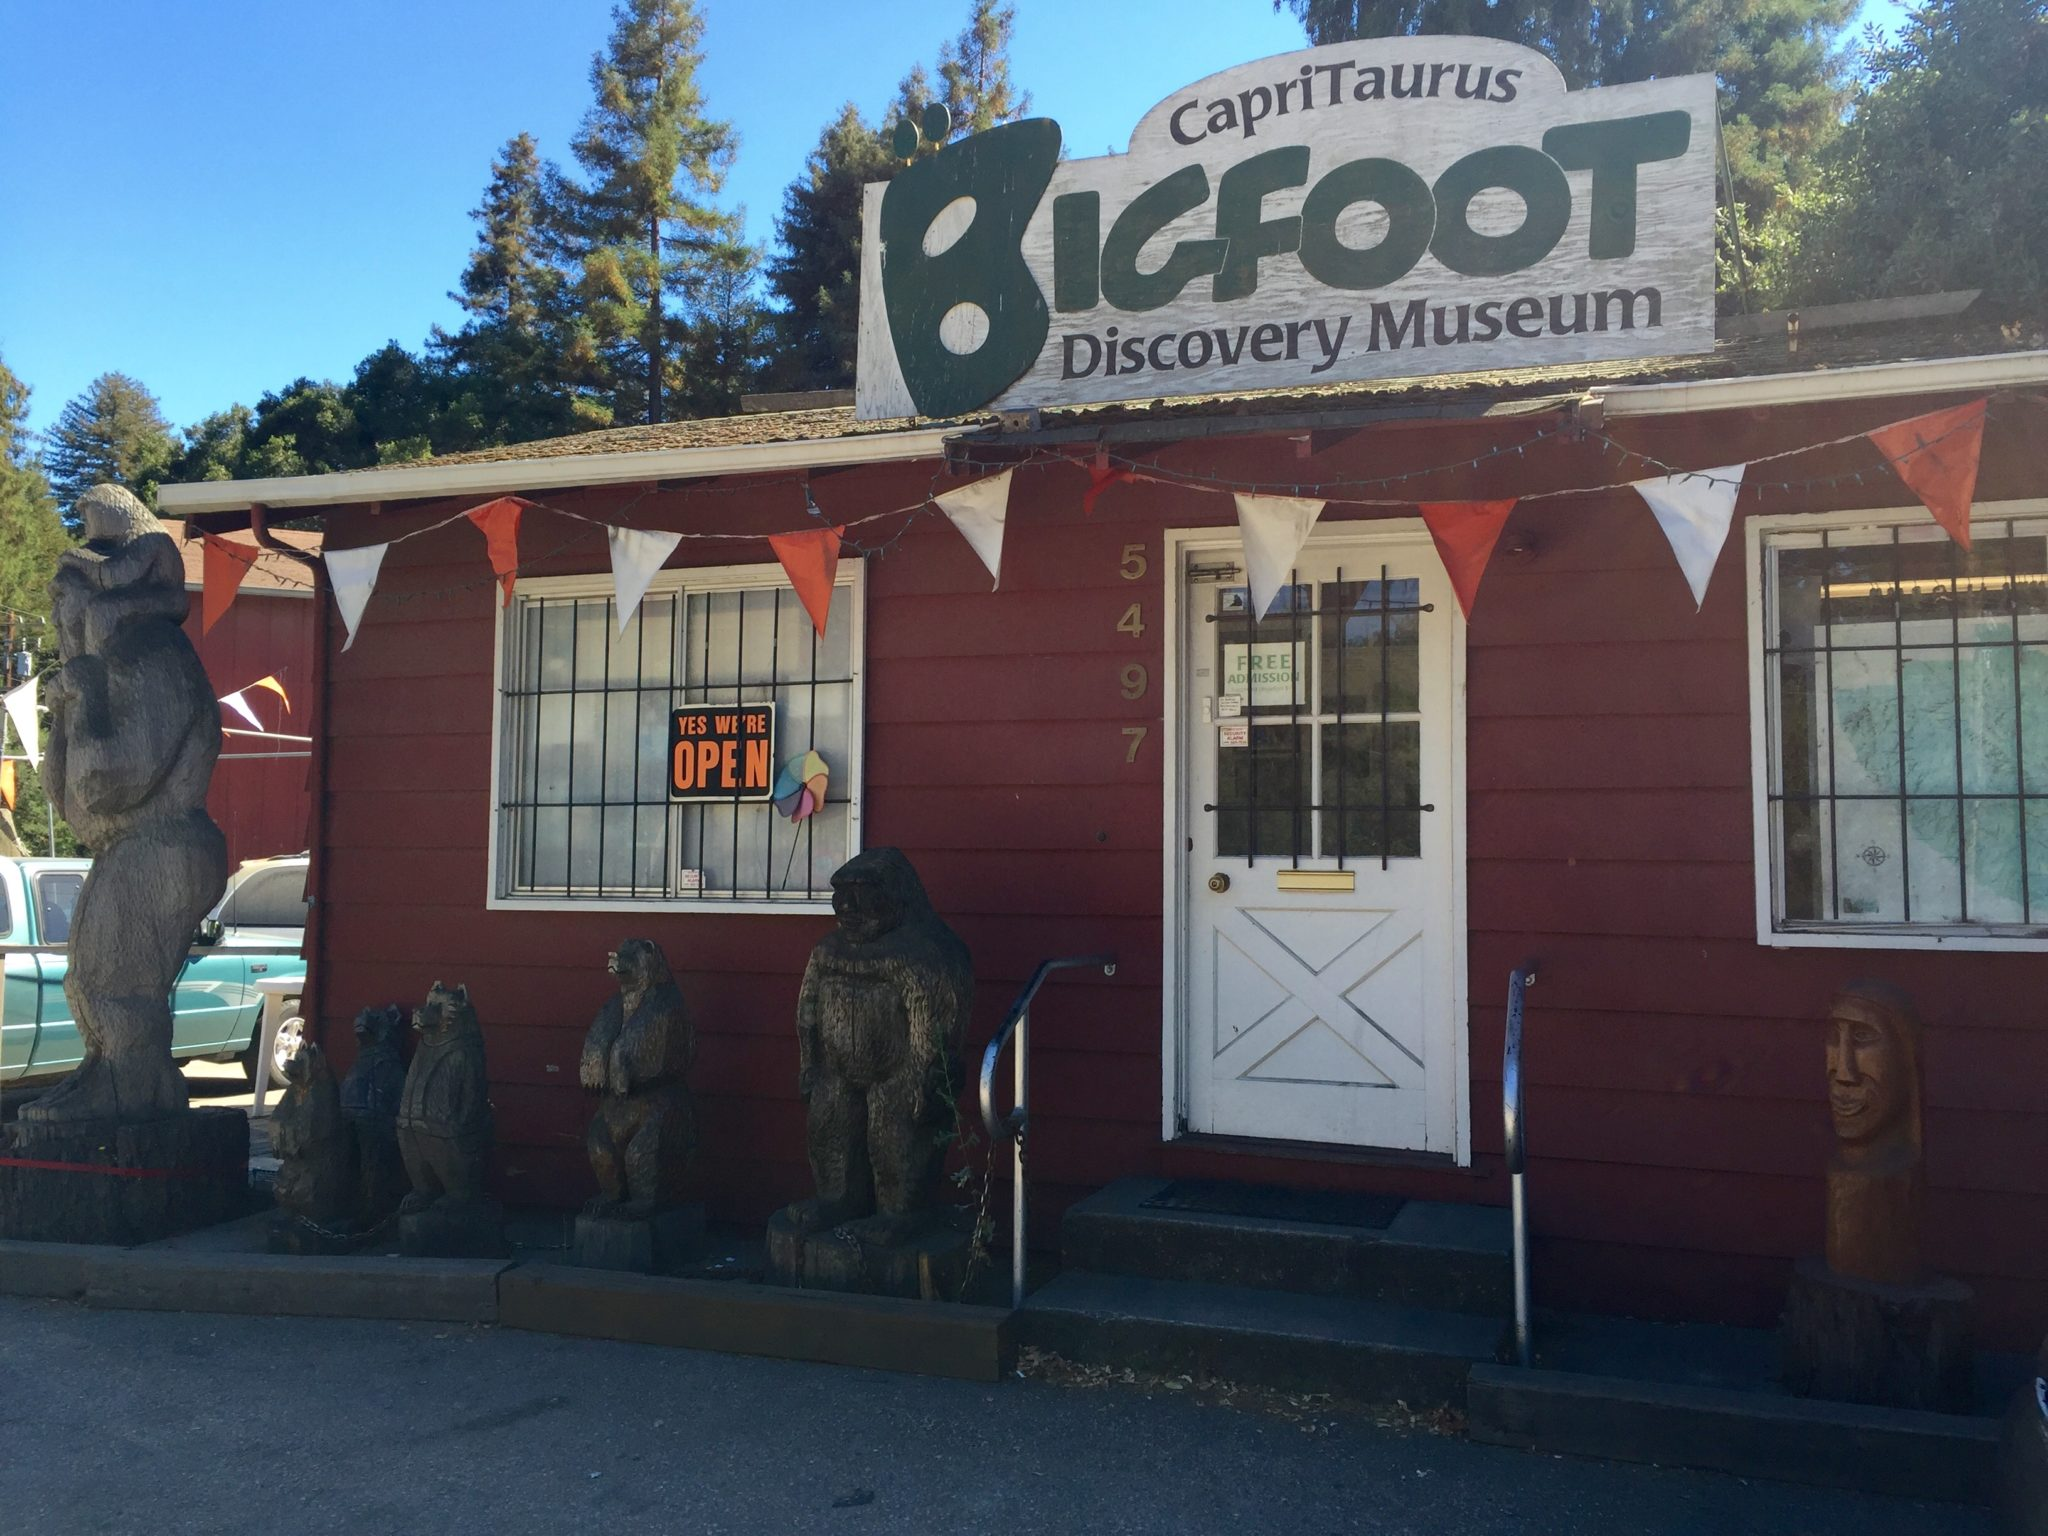 The Bigfoot Discovery Museum in Felton.